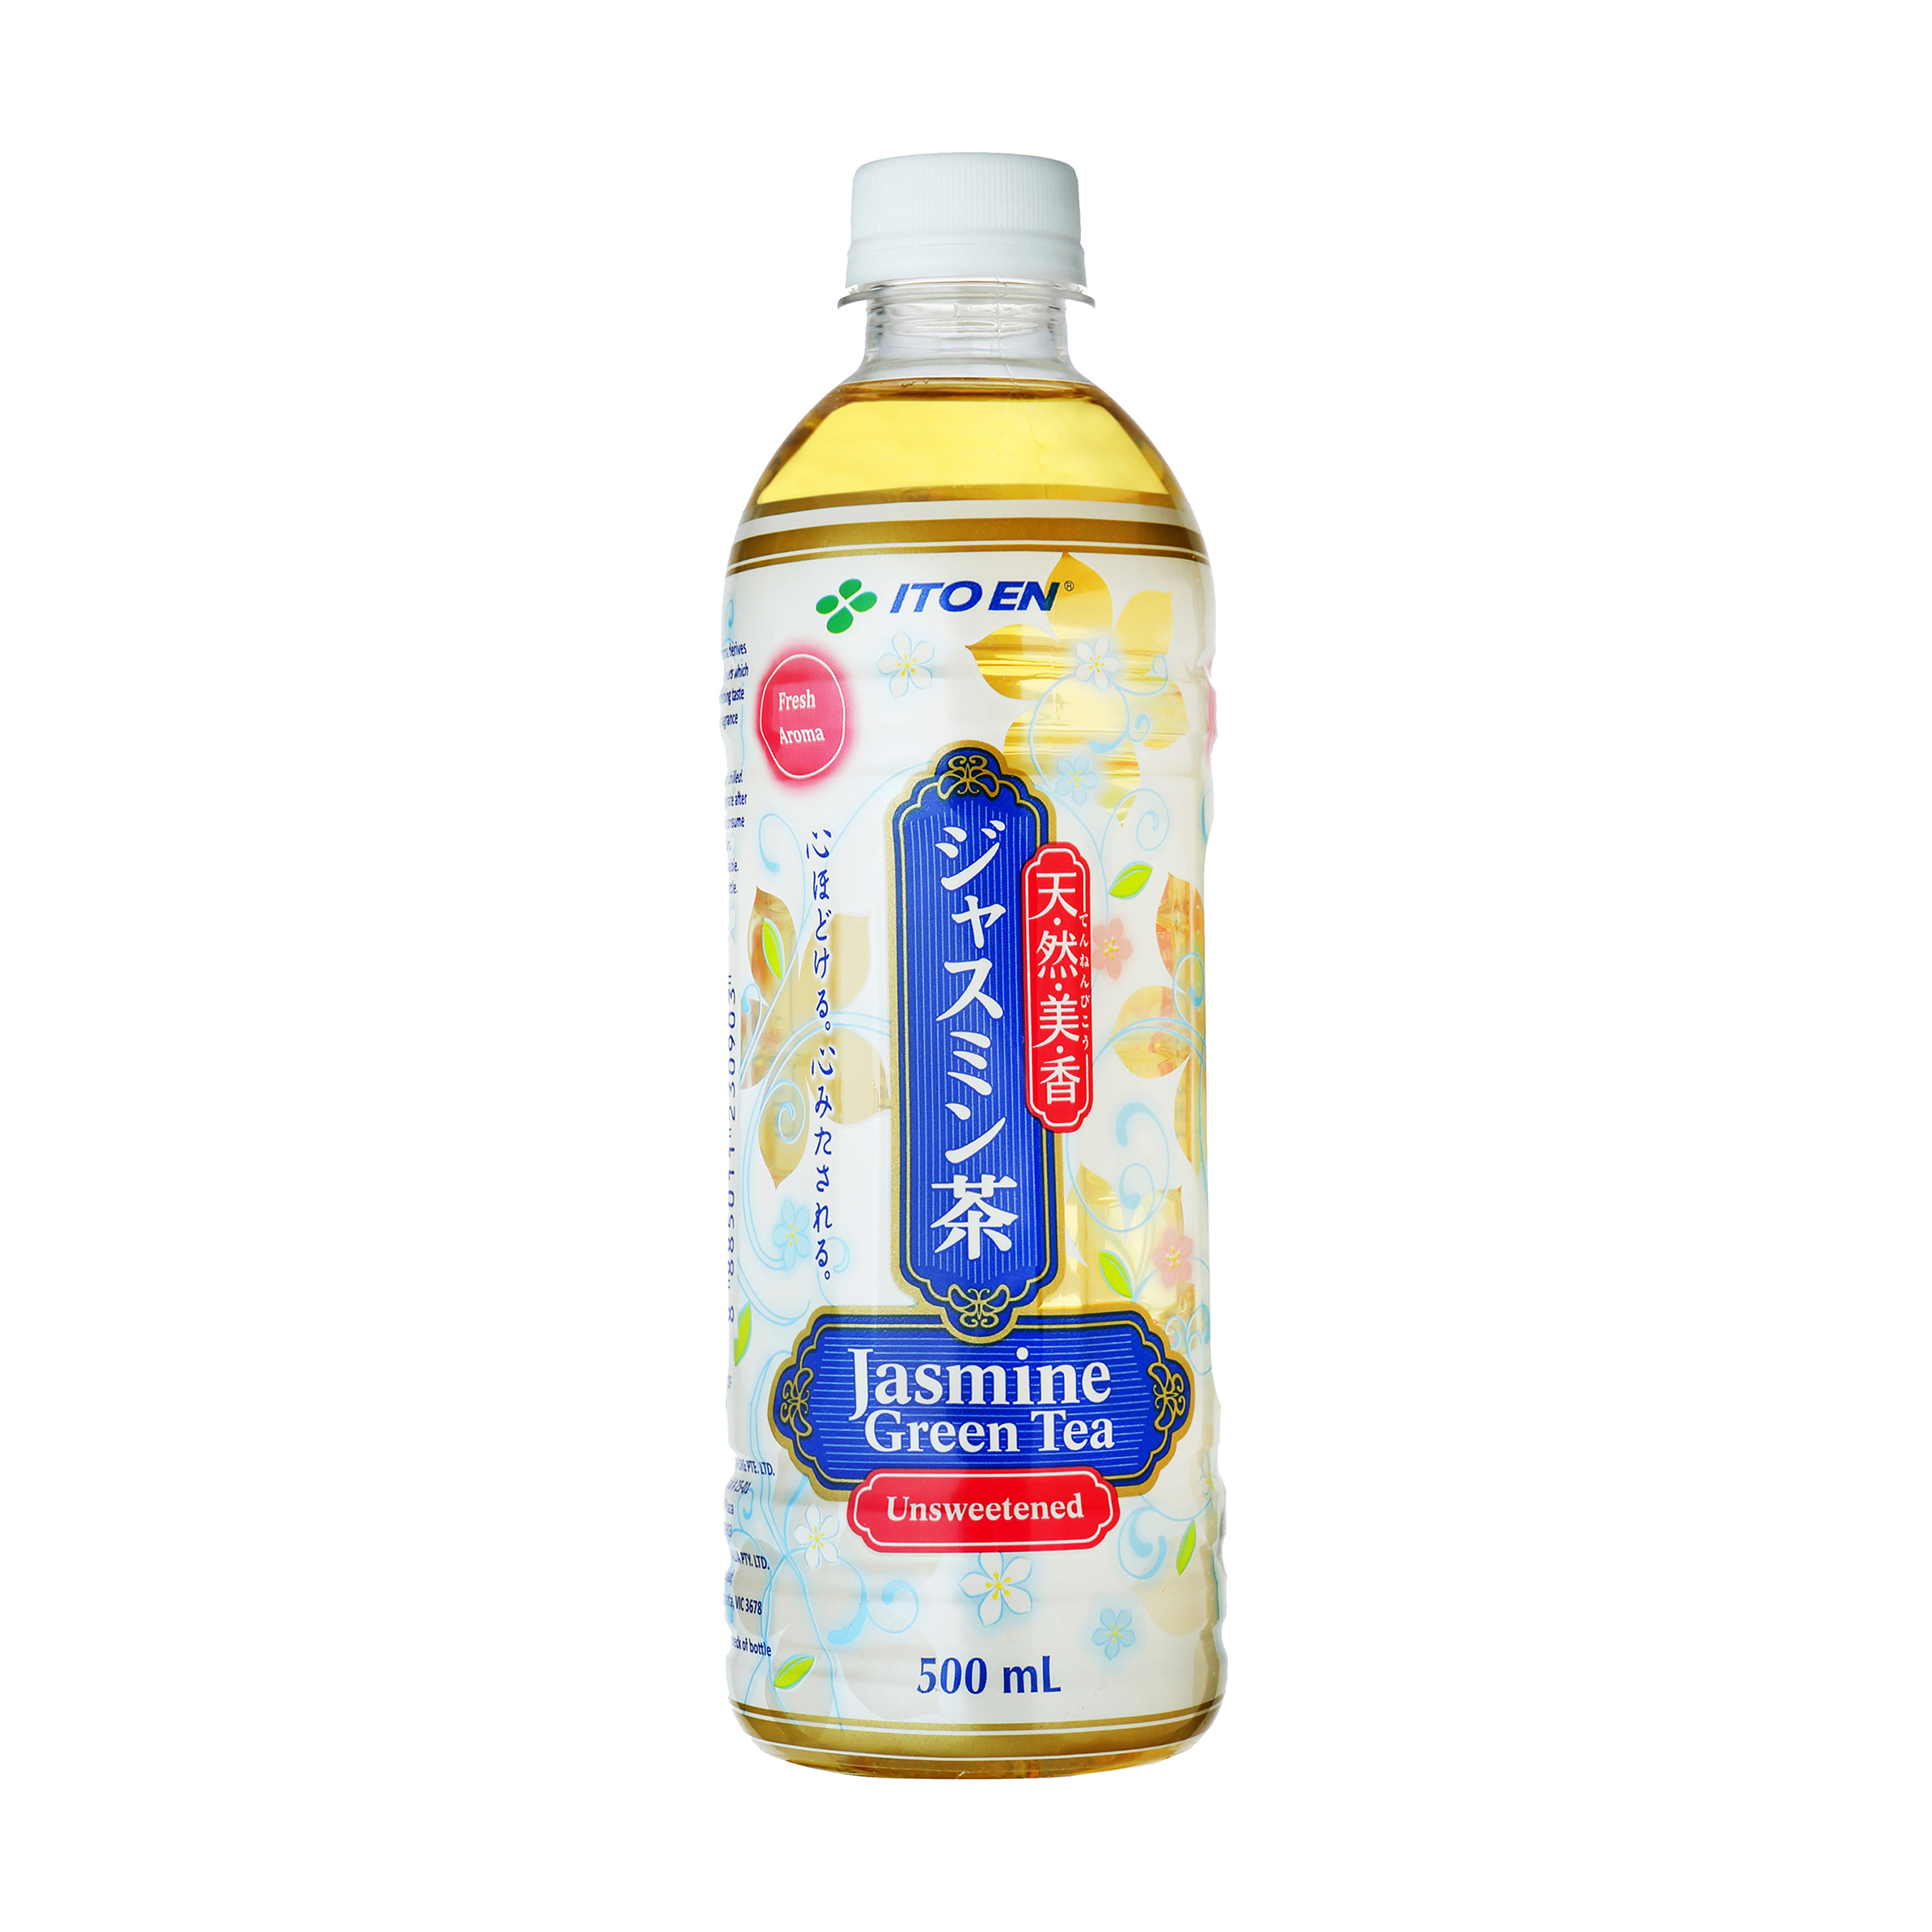 Jasmine Green Tea 500ml